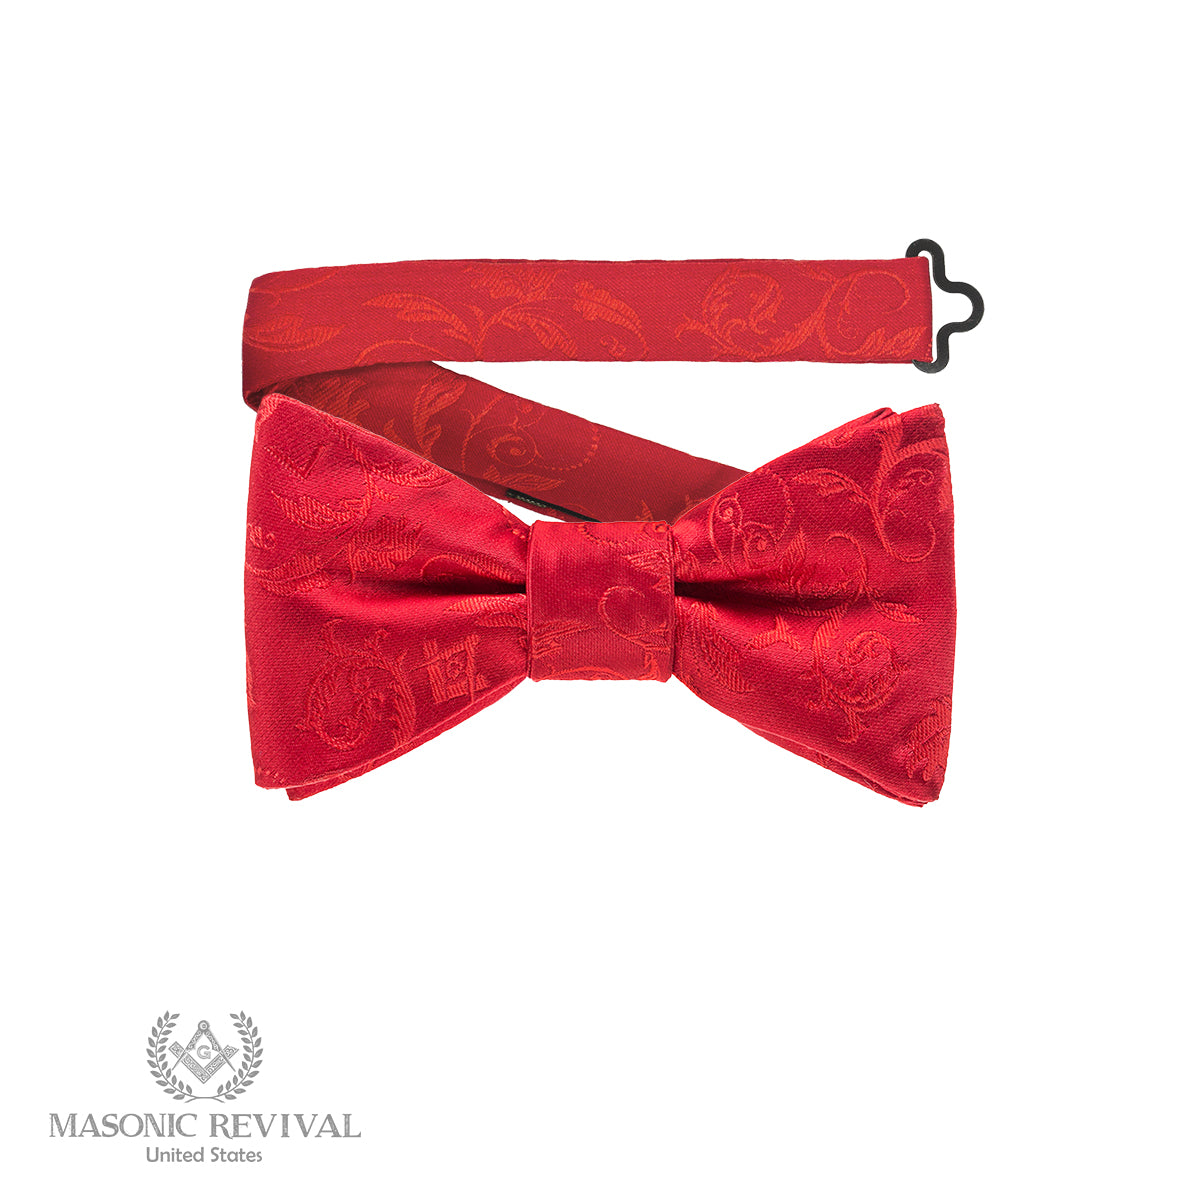 Noche Cryptica Bow Tie by Masonic Revival Cryptic Standard Self-Tied